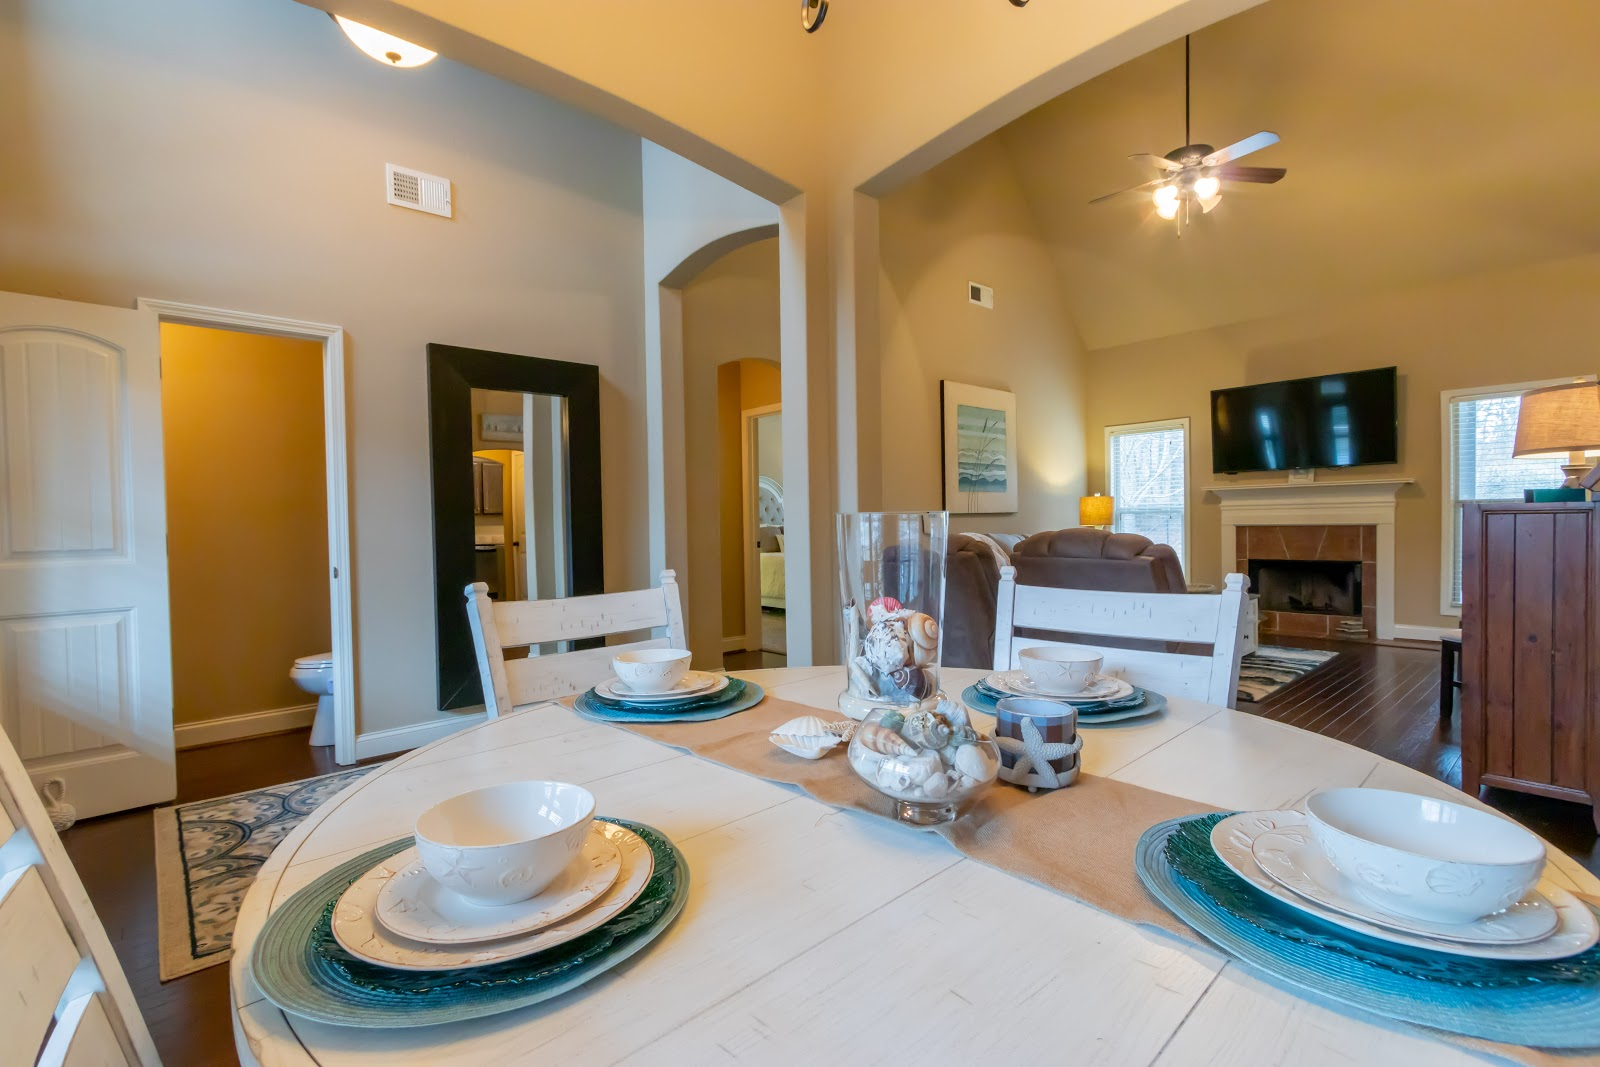 Add some pops of color to your dining room table with colorful chargers when staging your home